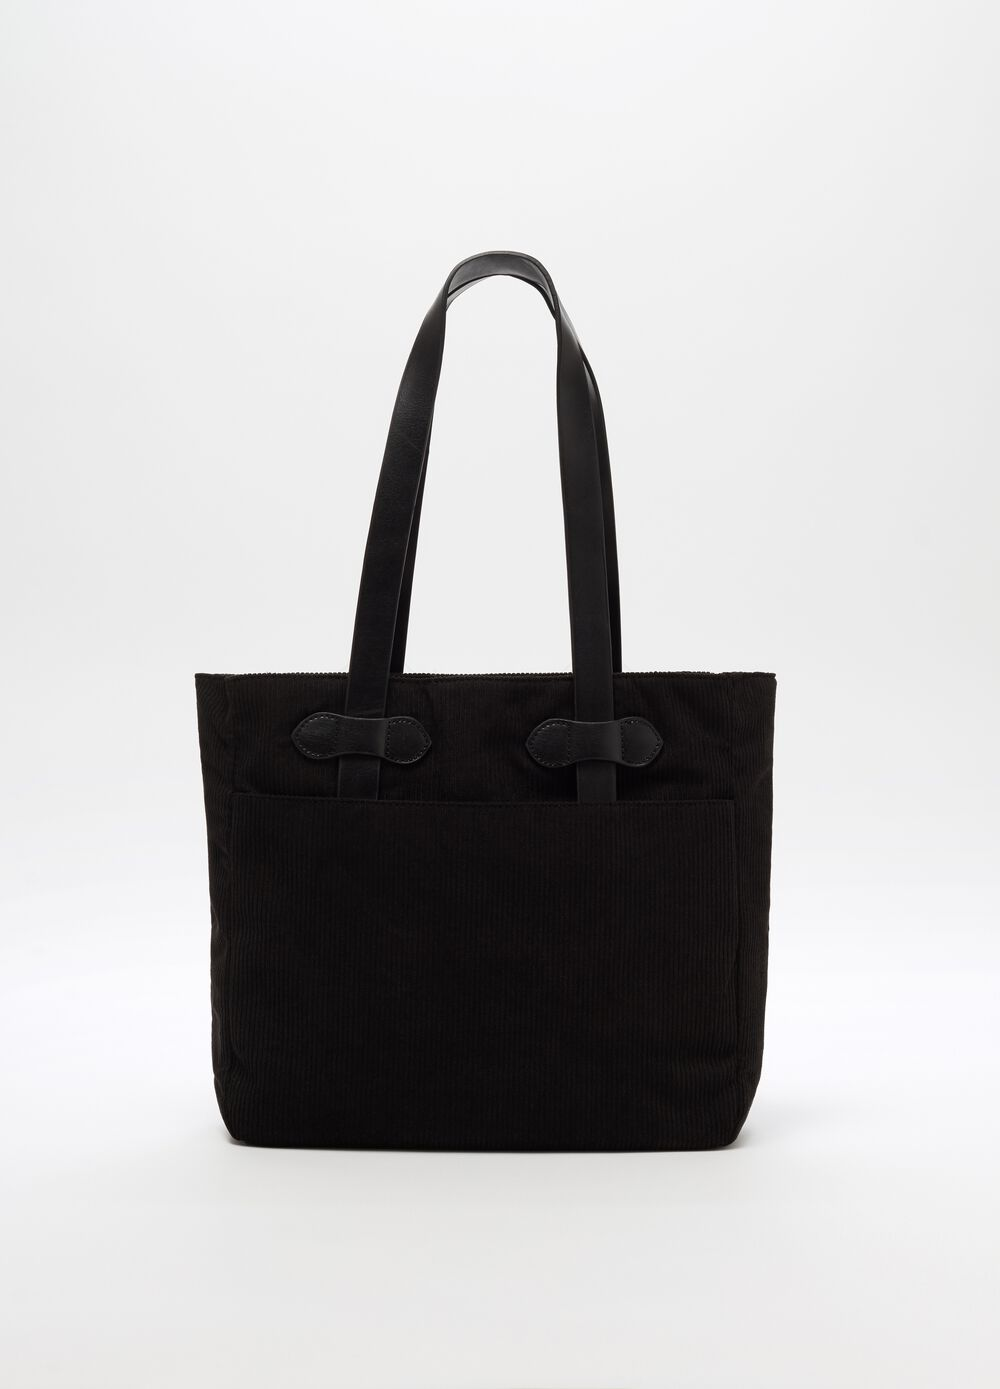 Shopper bag with handles and pocket